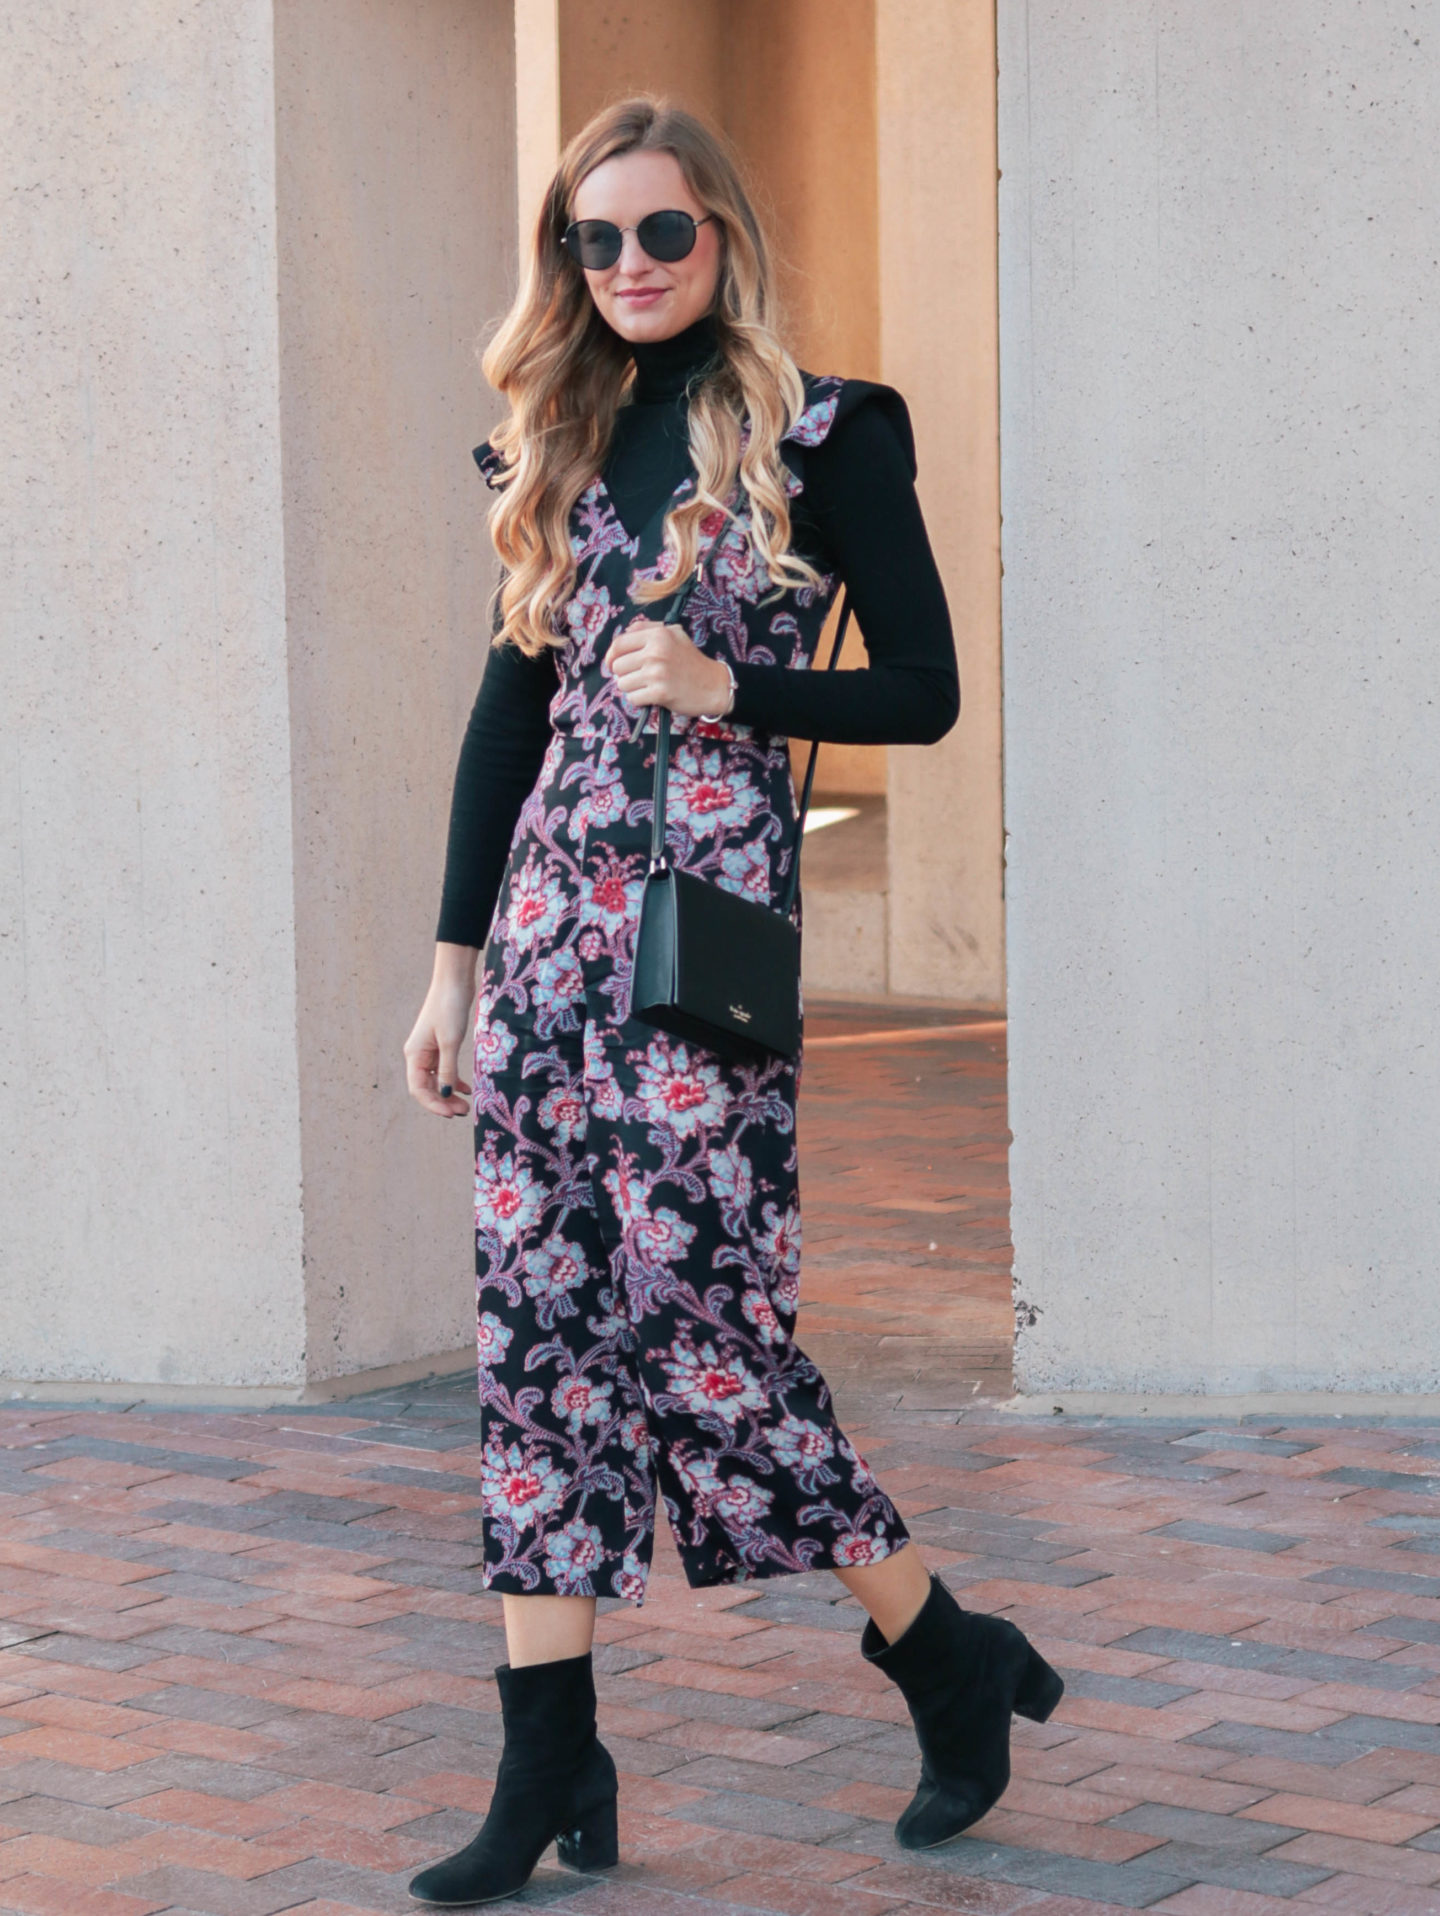 Fashion blogger, Leigha Gardner, of The Lilac Press wearing donning a black turtleneck to transition a floral jumper from warm weather wear to winter wear.